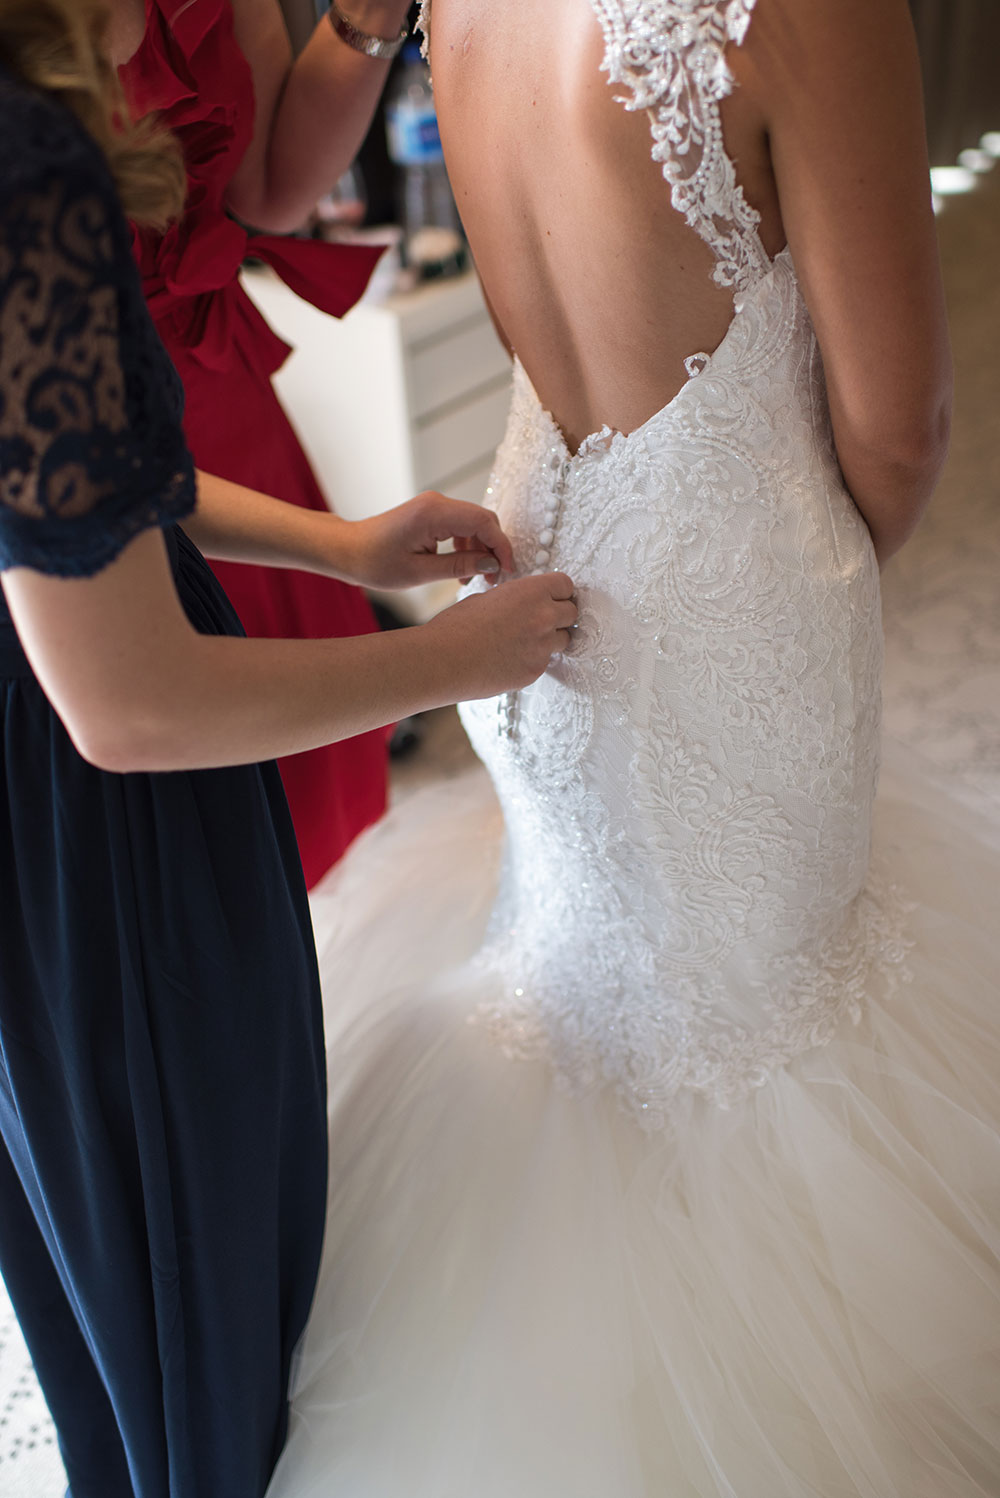 Buttoning up the gown